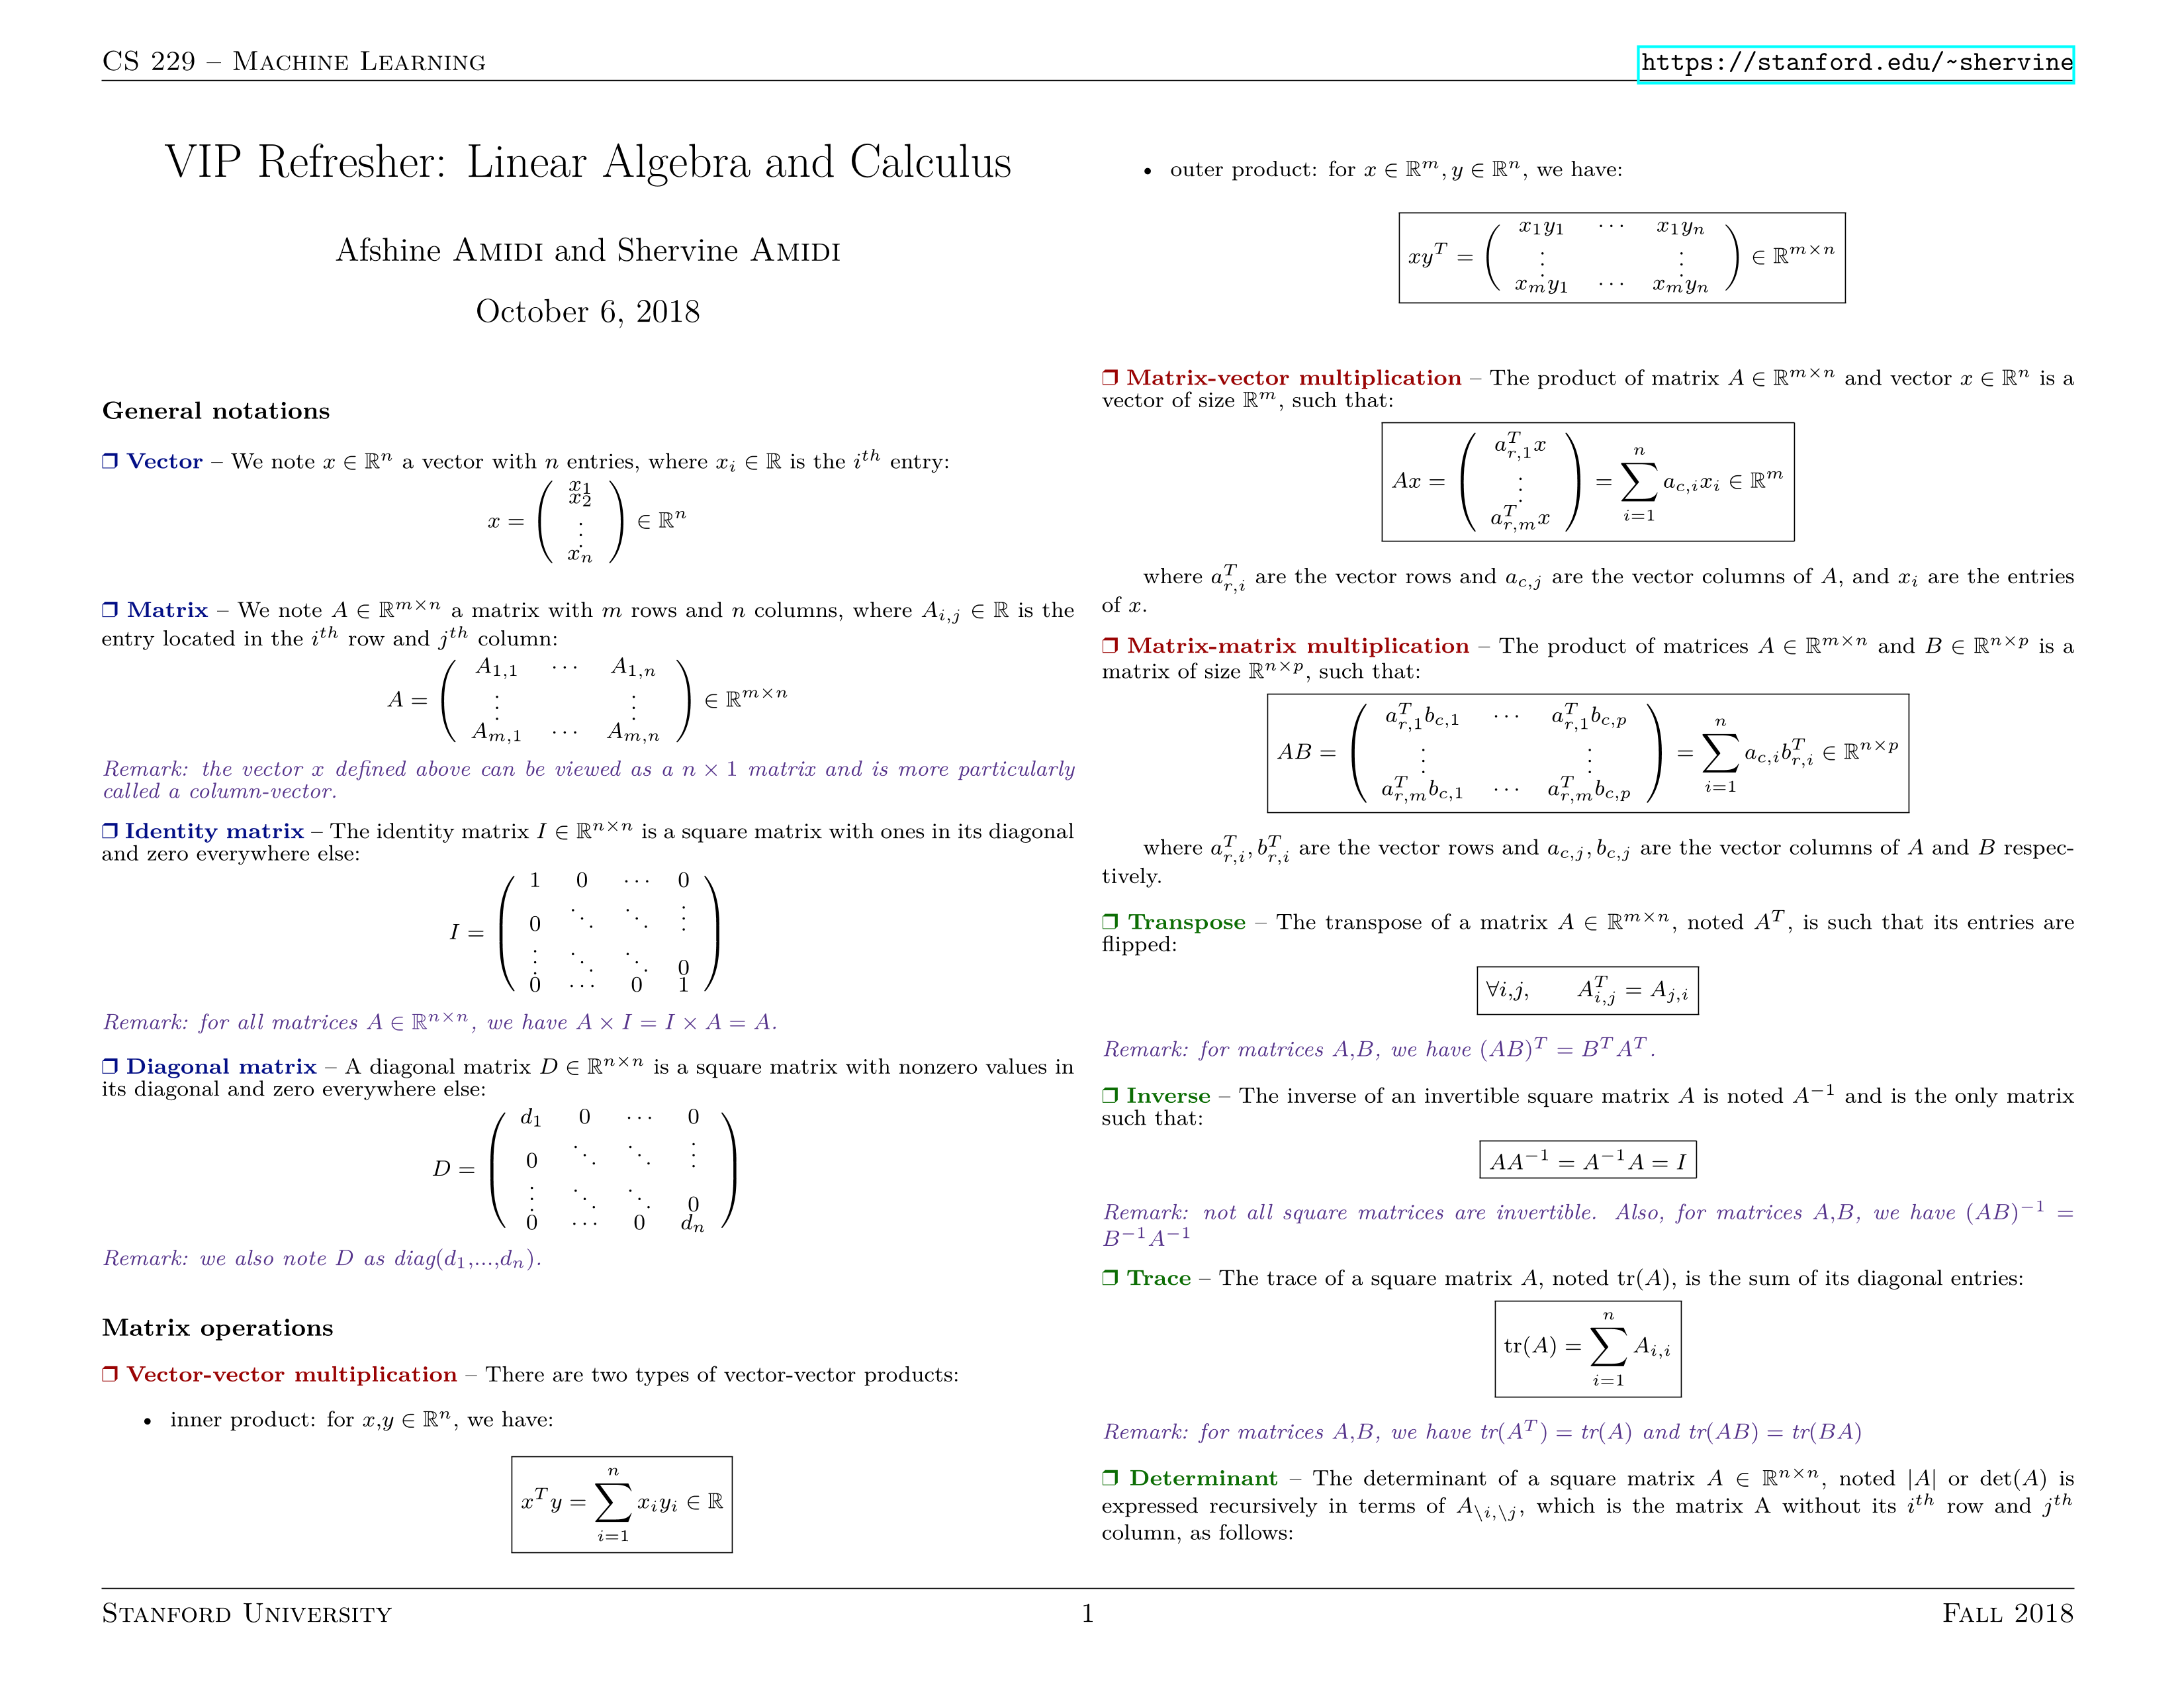 VIP Refresher: Linear Algebra and Calculus Cheat Sheets